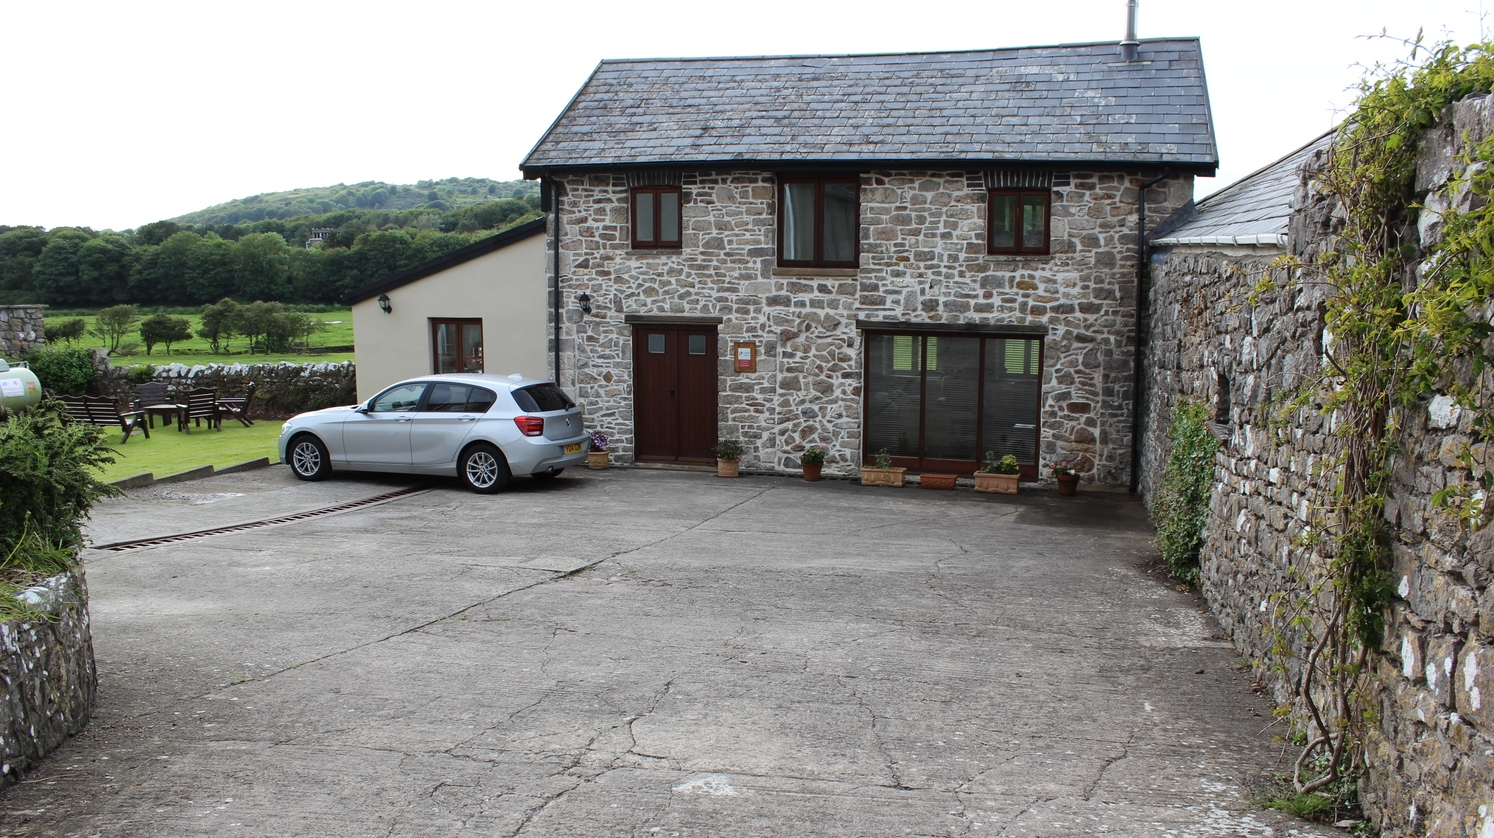 Dormy Coachhouse, backing onto the commons of Ogmore-by-Sea.